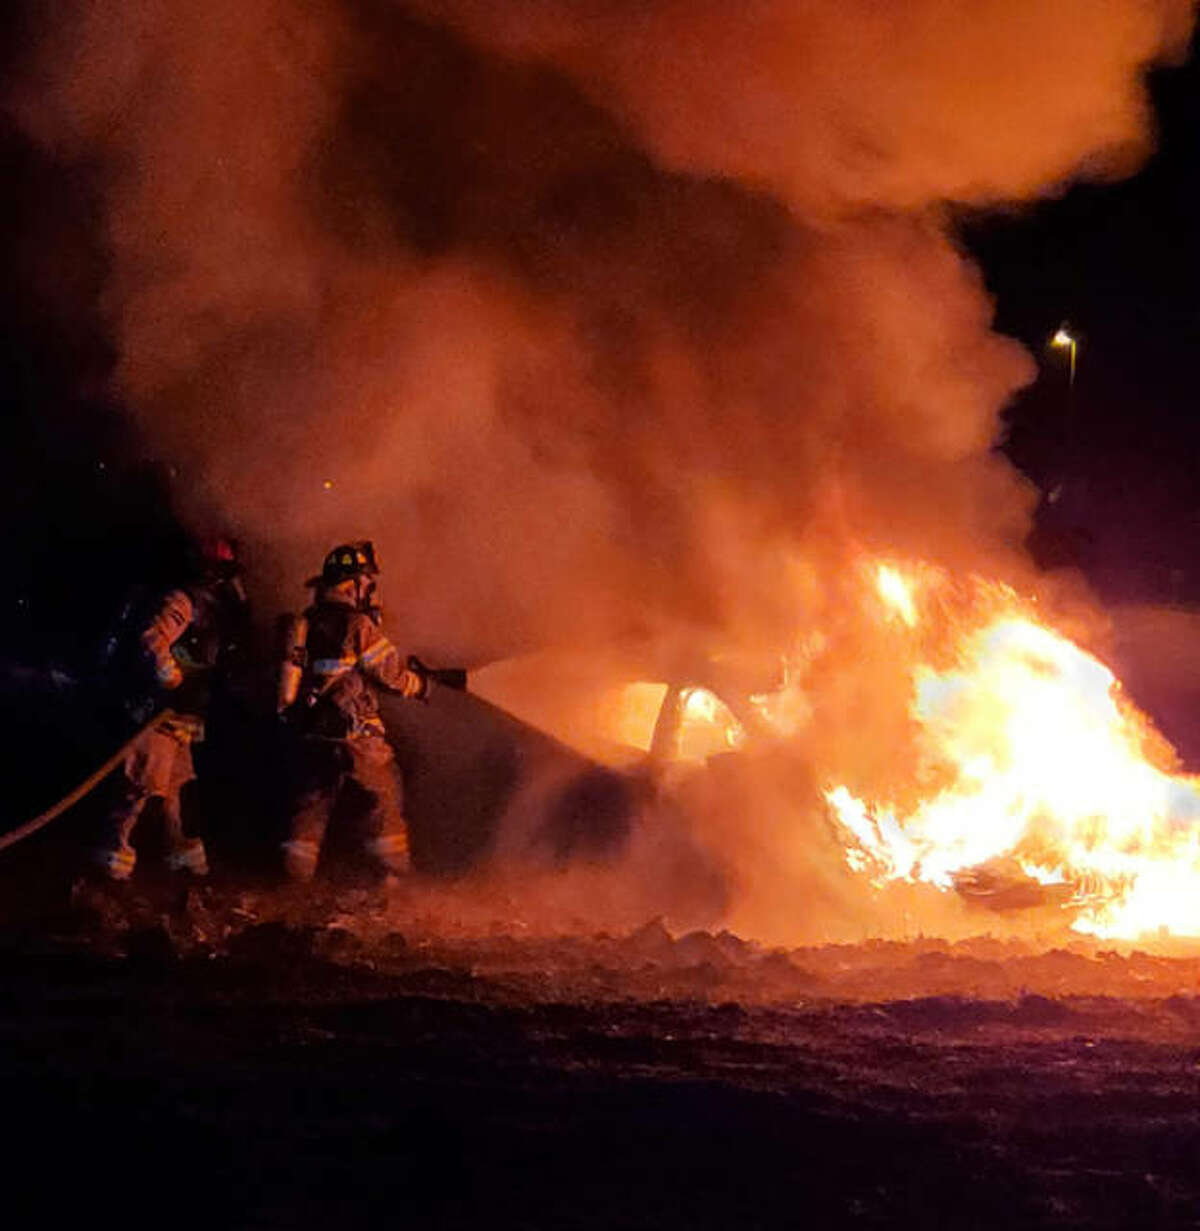 Highland firefighters work to extinguish a car on fire early Sunday morning.